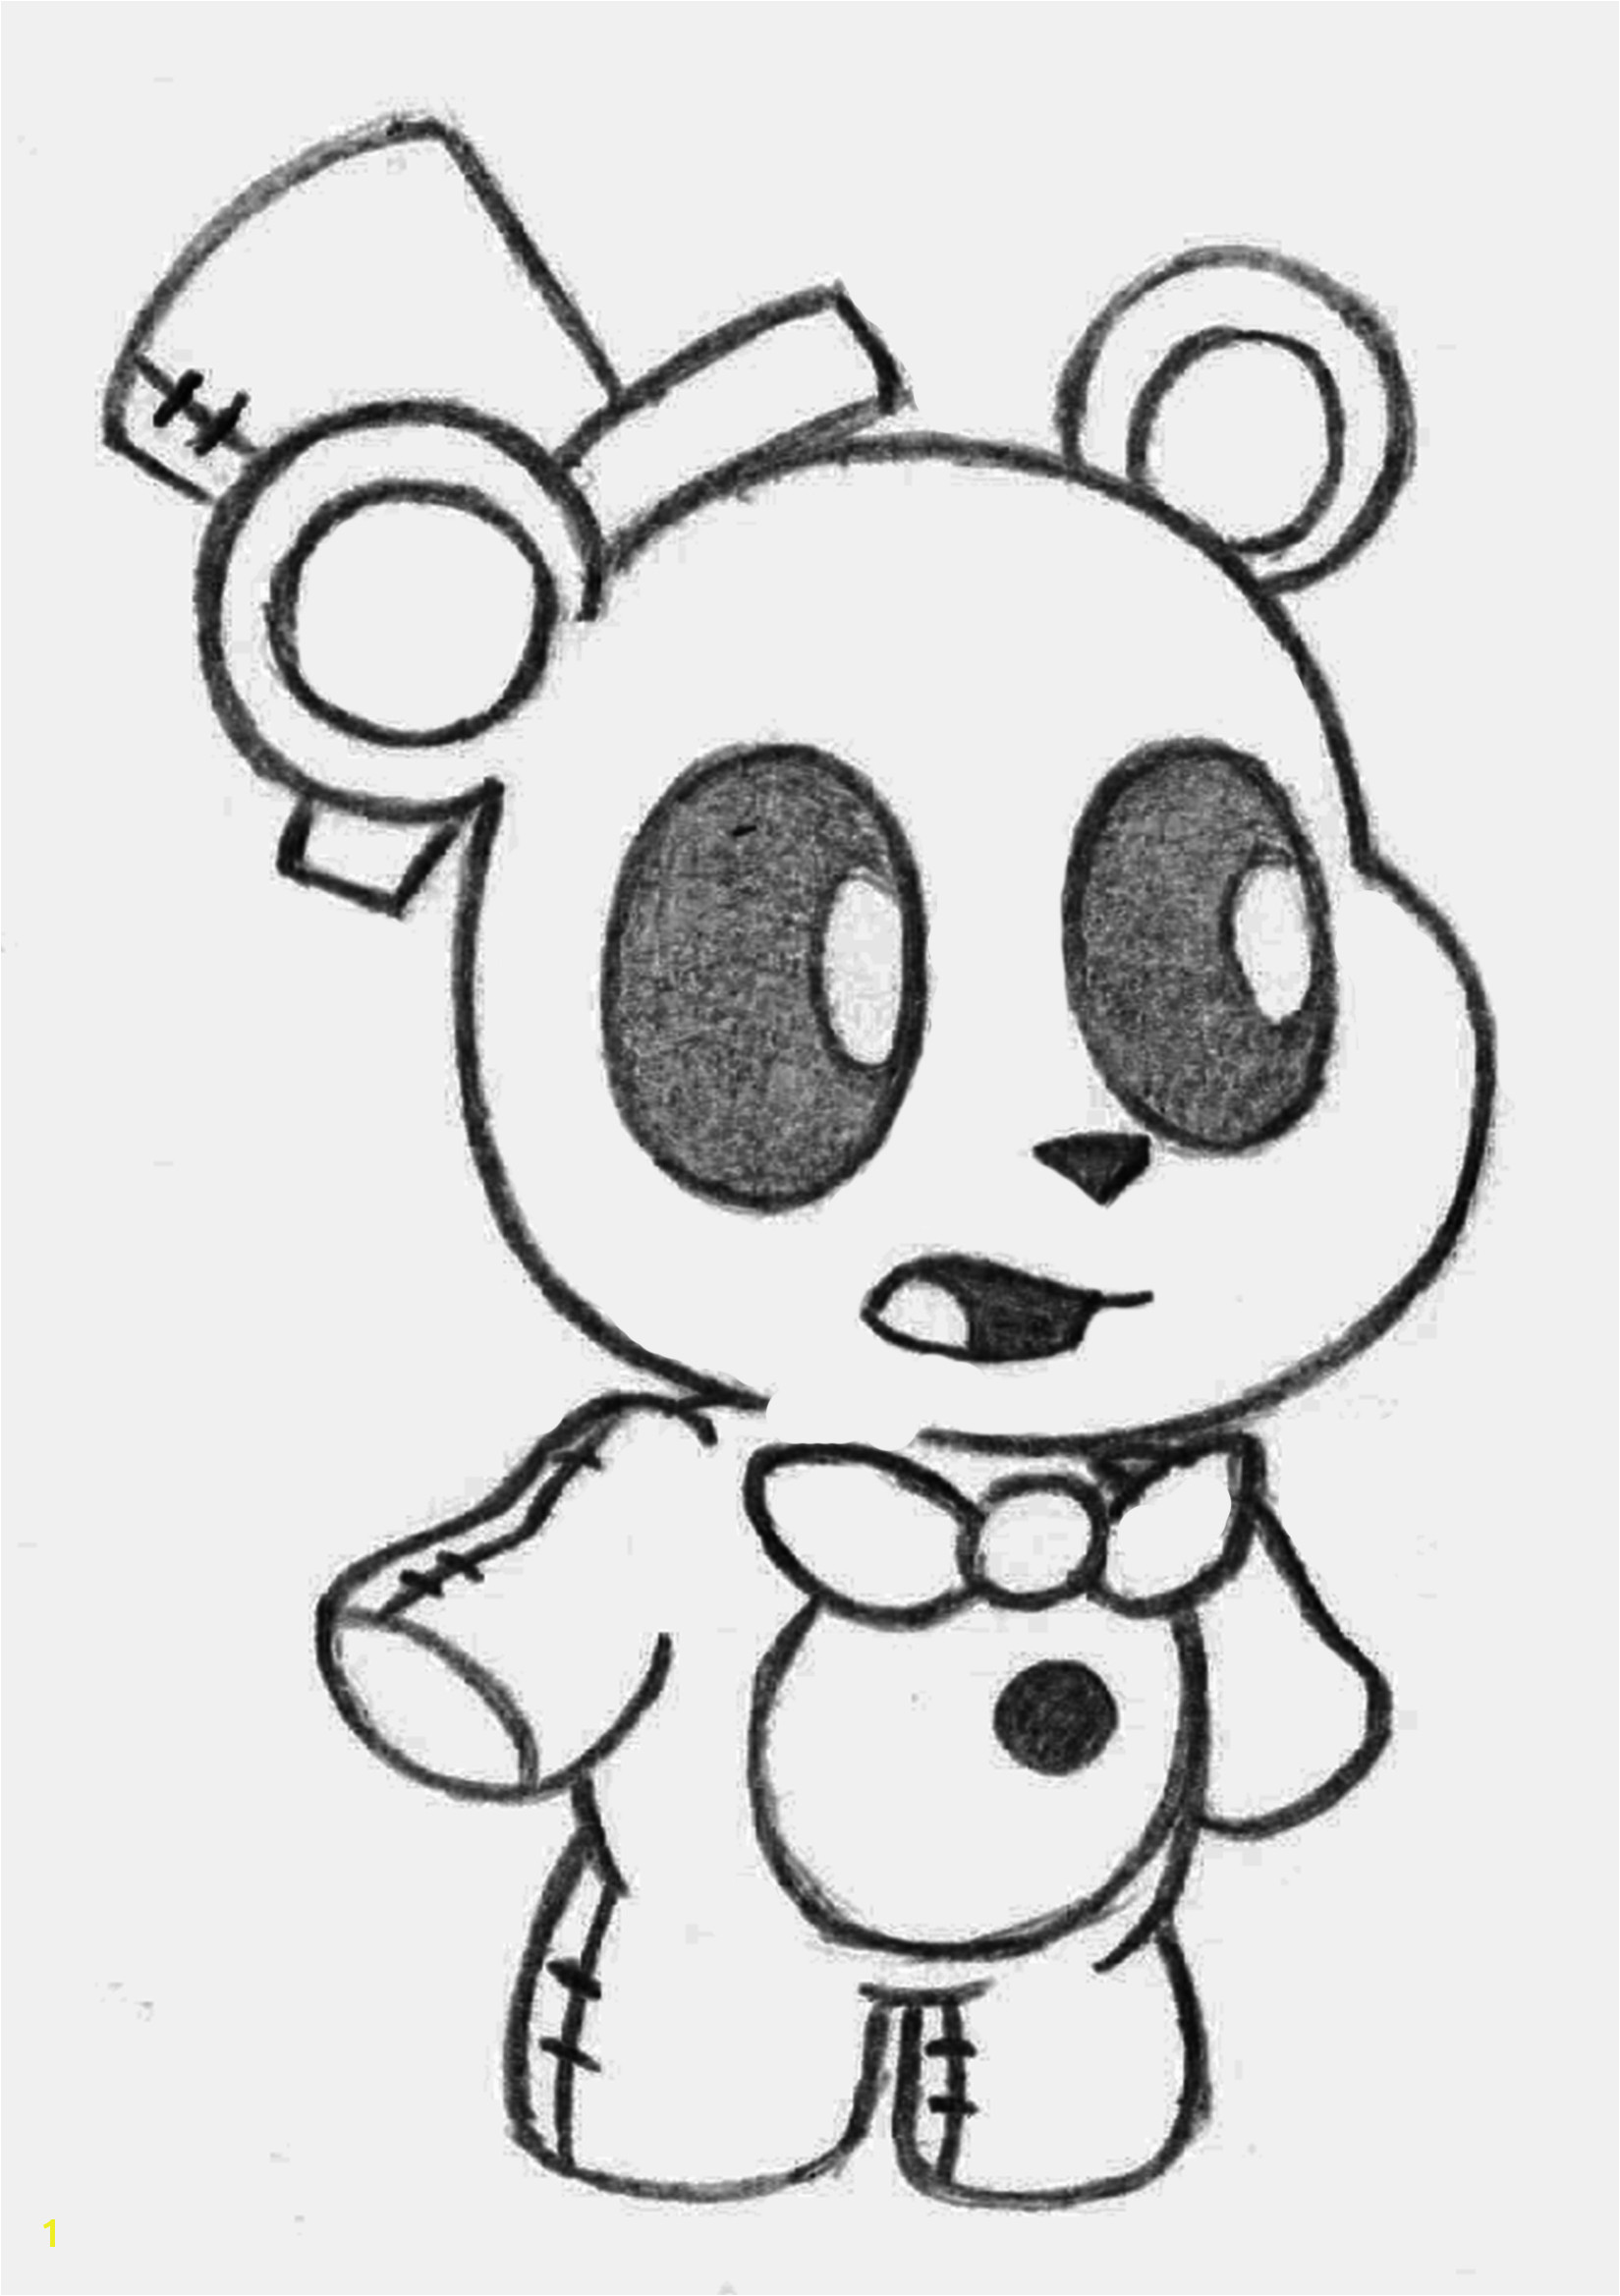 Funtime Foxy Coloring Pages Coloring Pages Coloring Pages Inspirierend Foxy Draws Ausmalbilder Beste Malvorlage